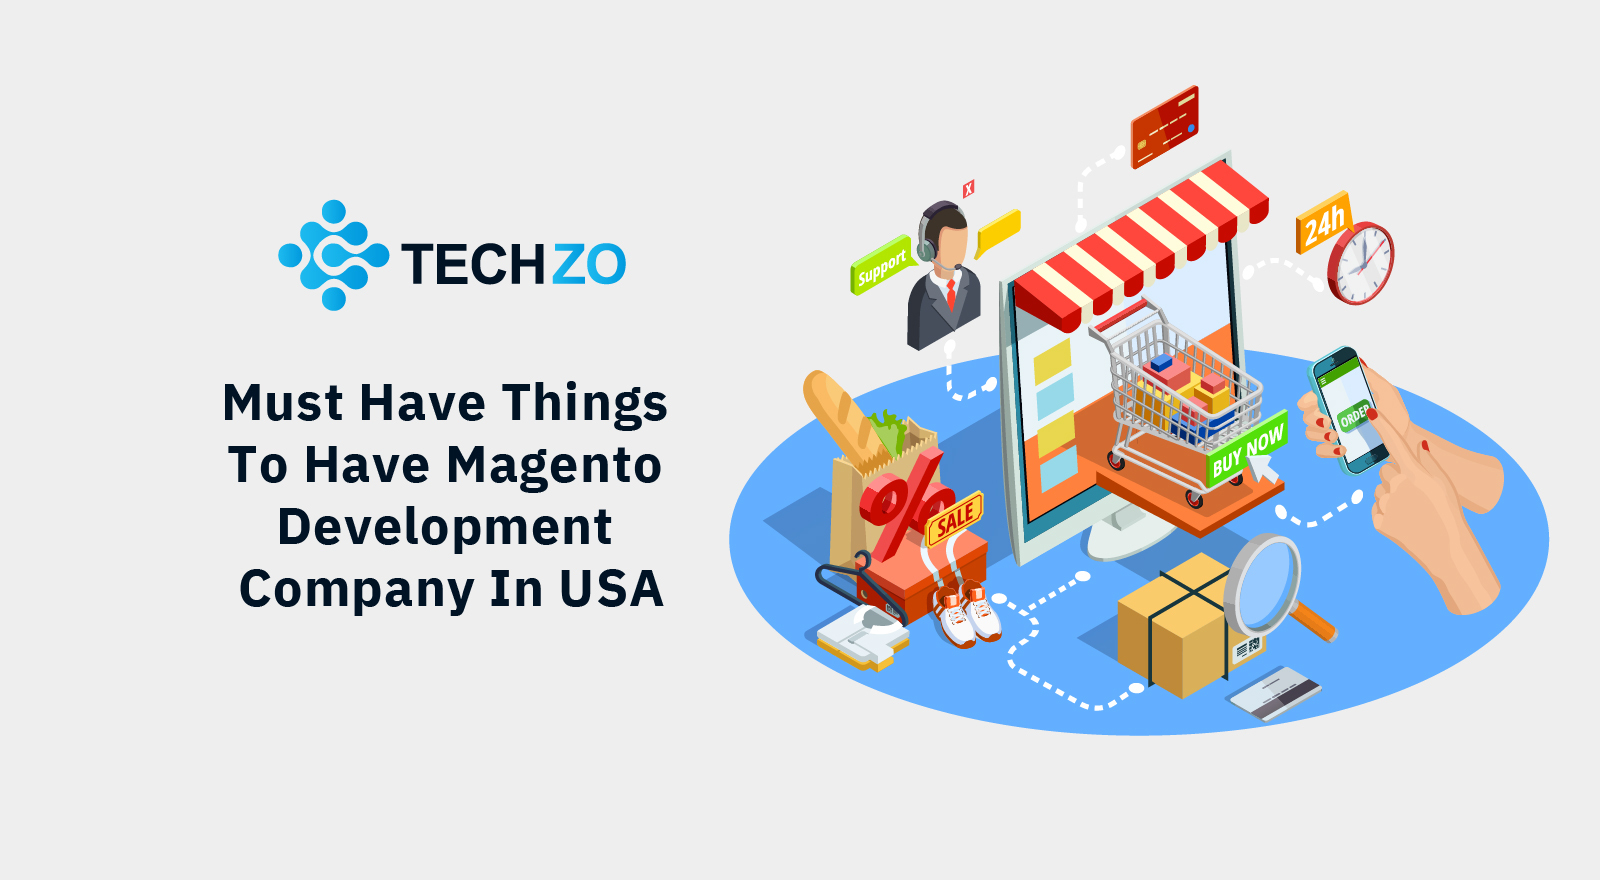 Must Have Things To Have Magento Development Company In USA